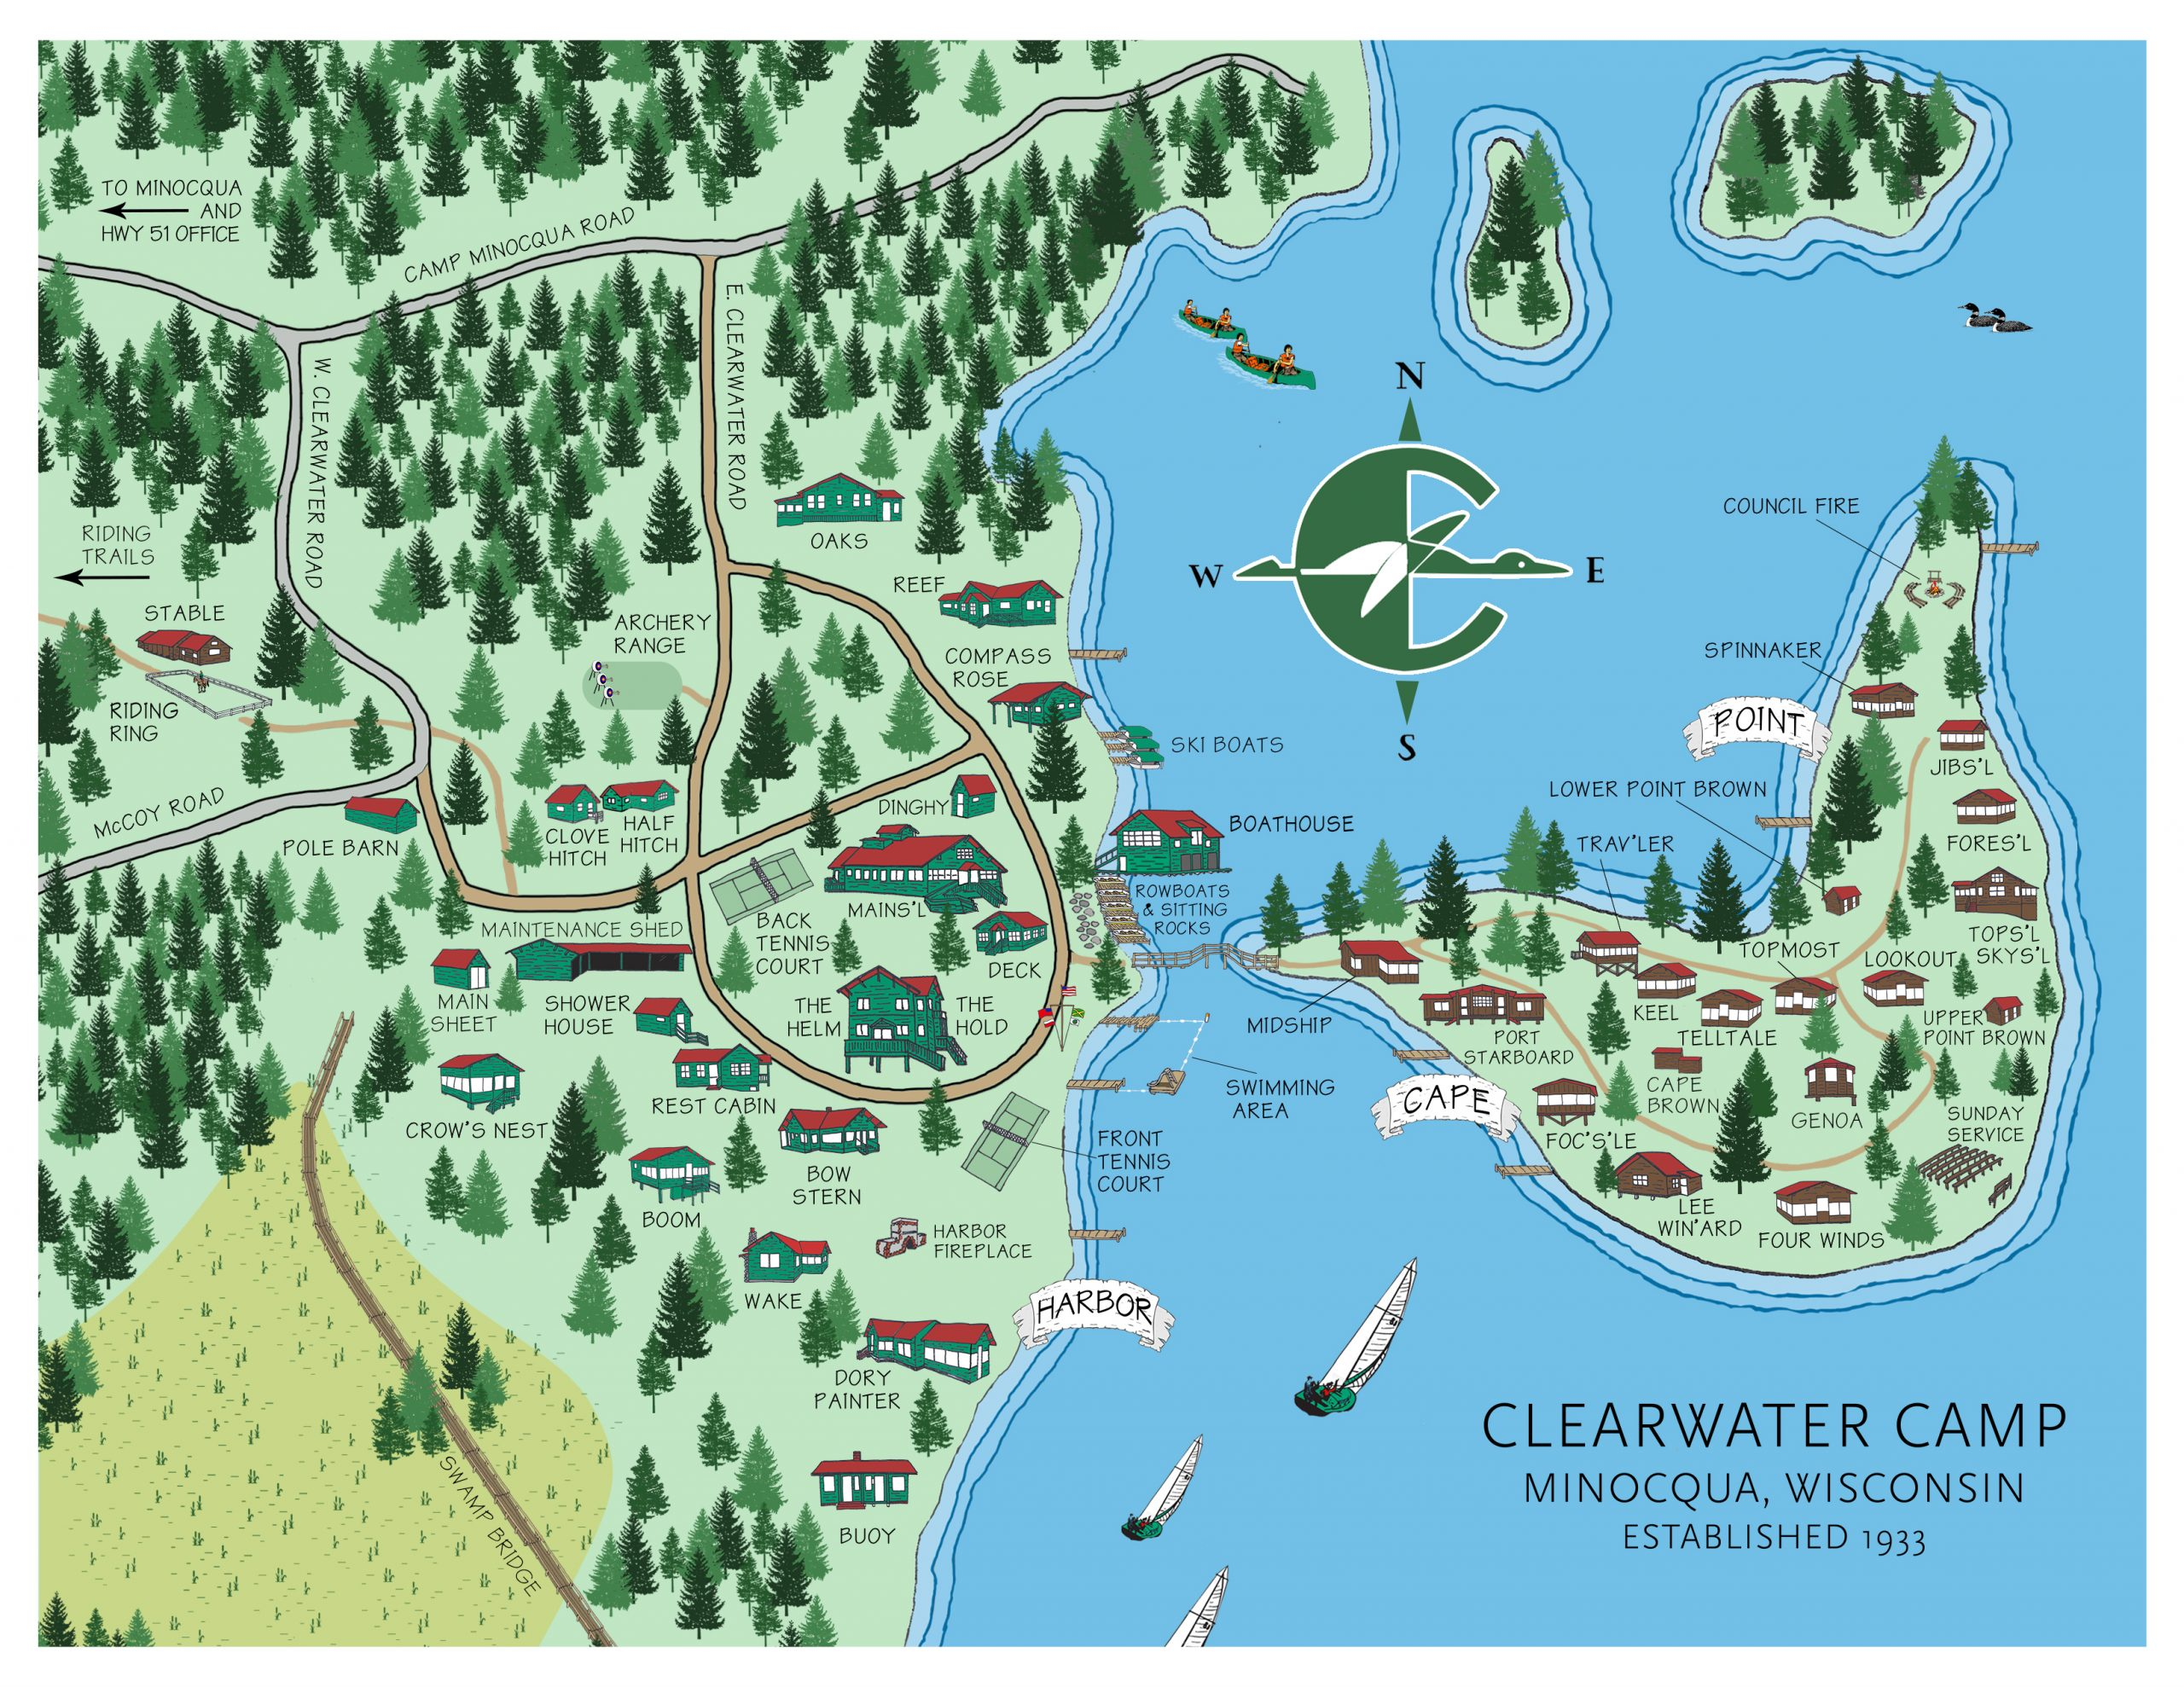 Map of Clearwater